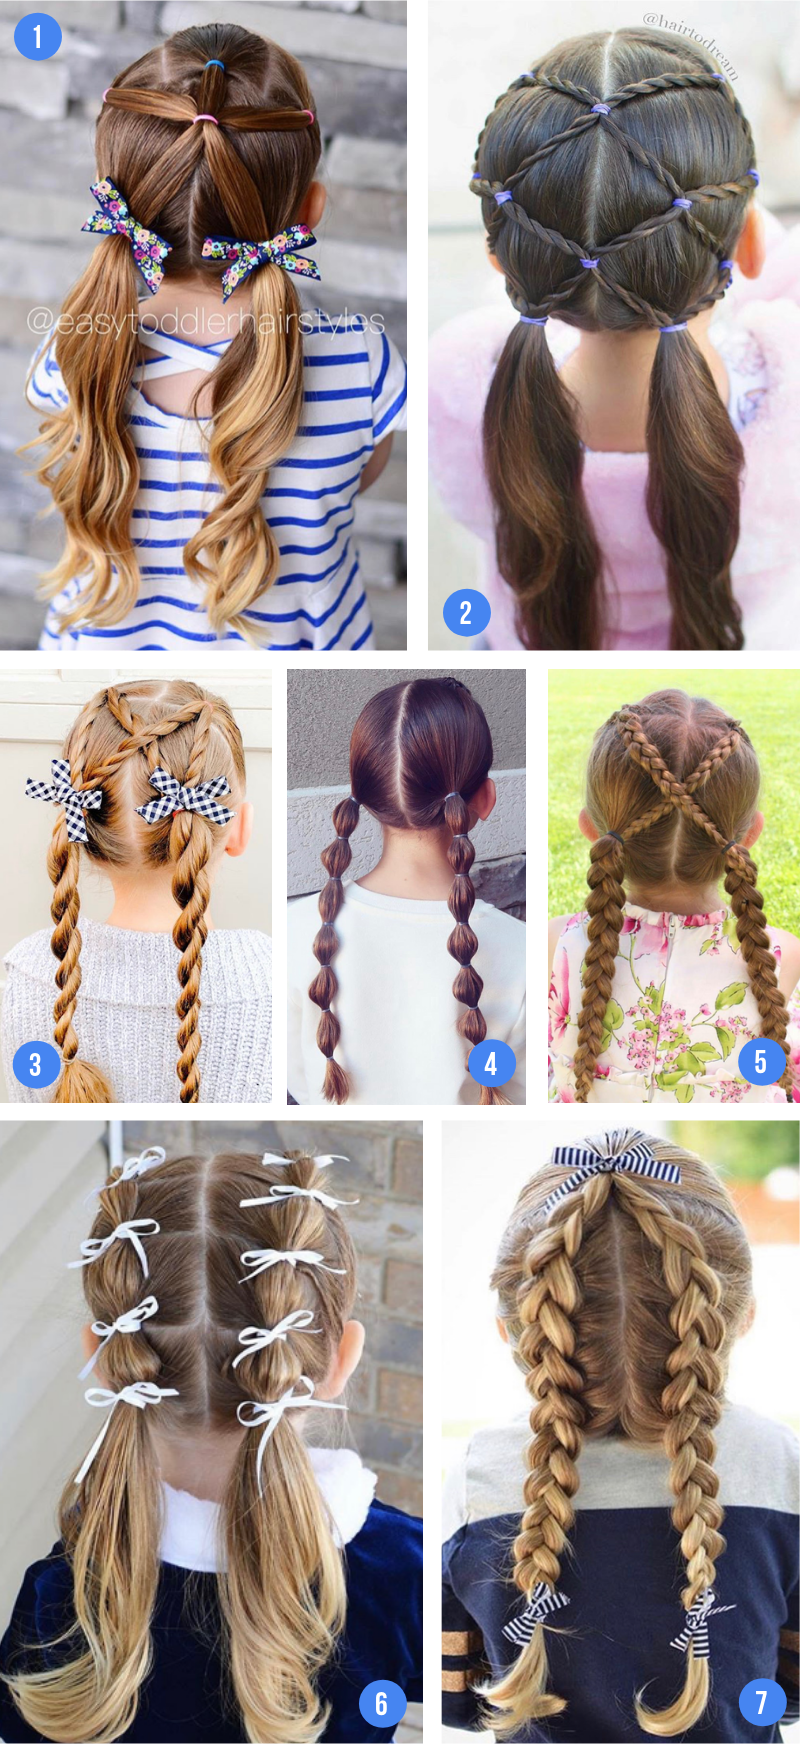 Easy Girls Hairstyles For Toddlers Tweens Teens Girls Hairstyles Easy Kids Hairstyles Girls Easy Little Girl Hairstyles